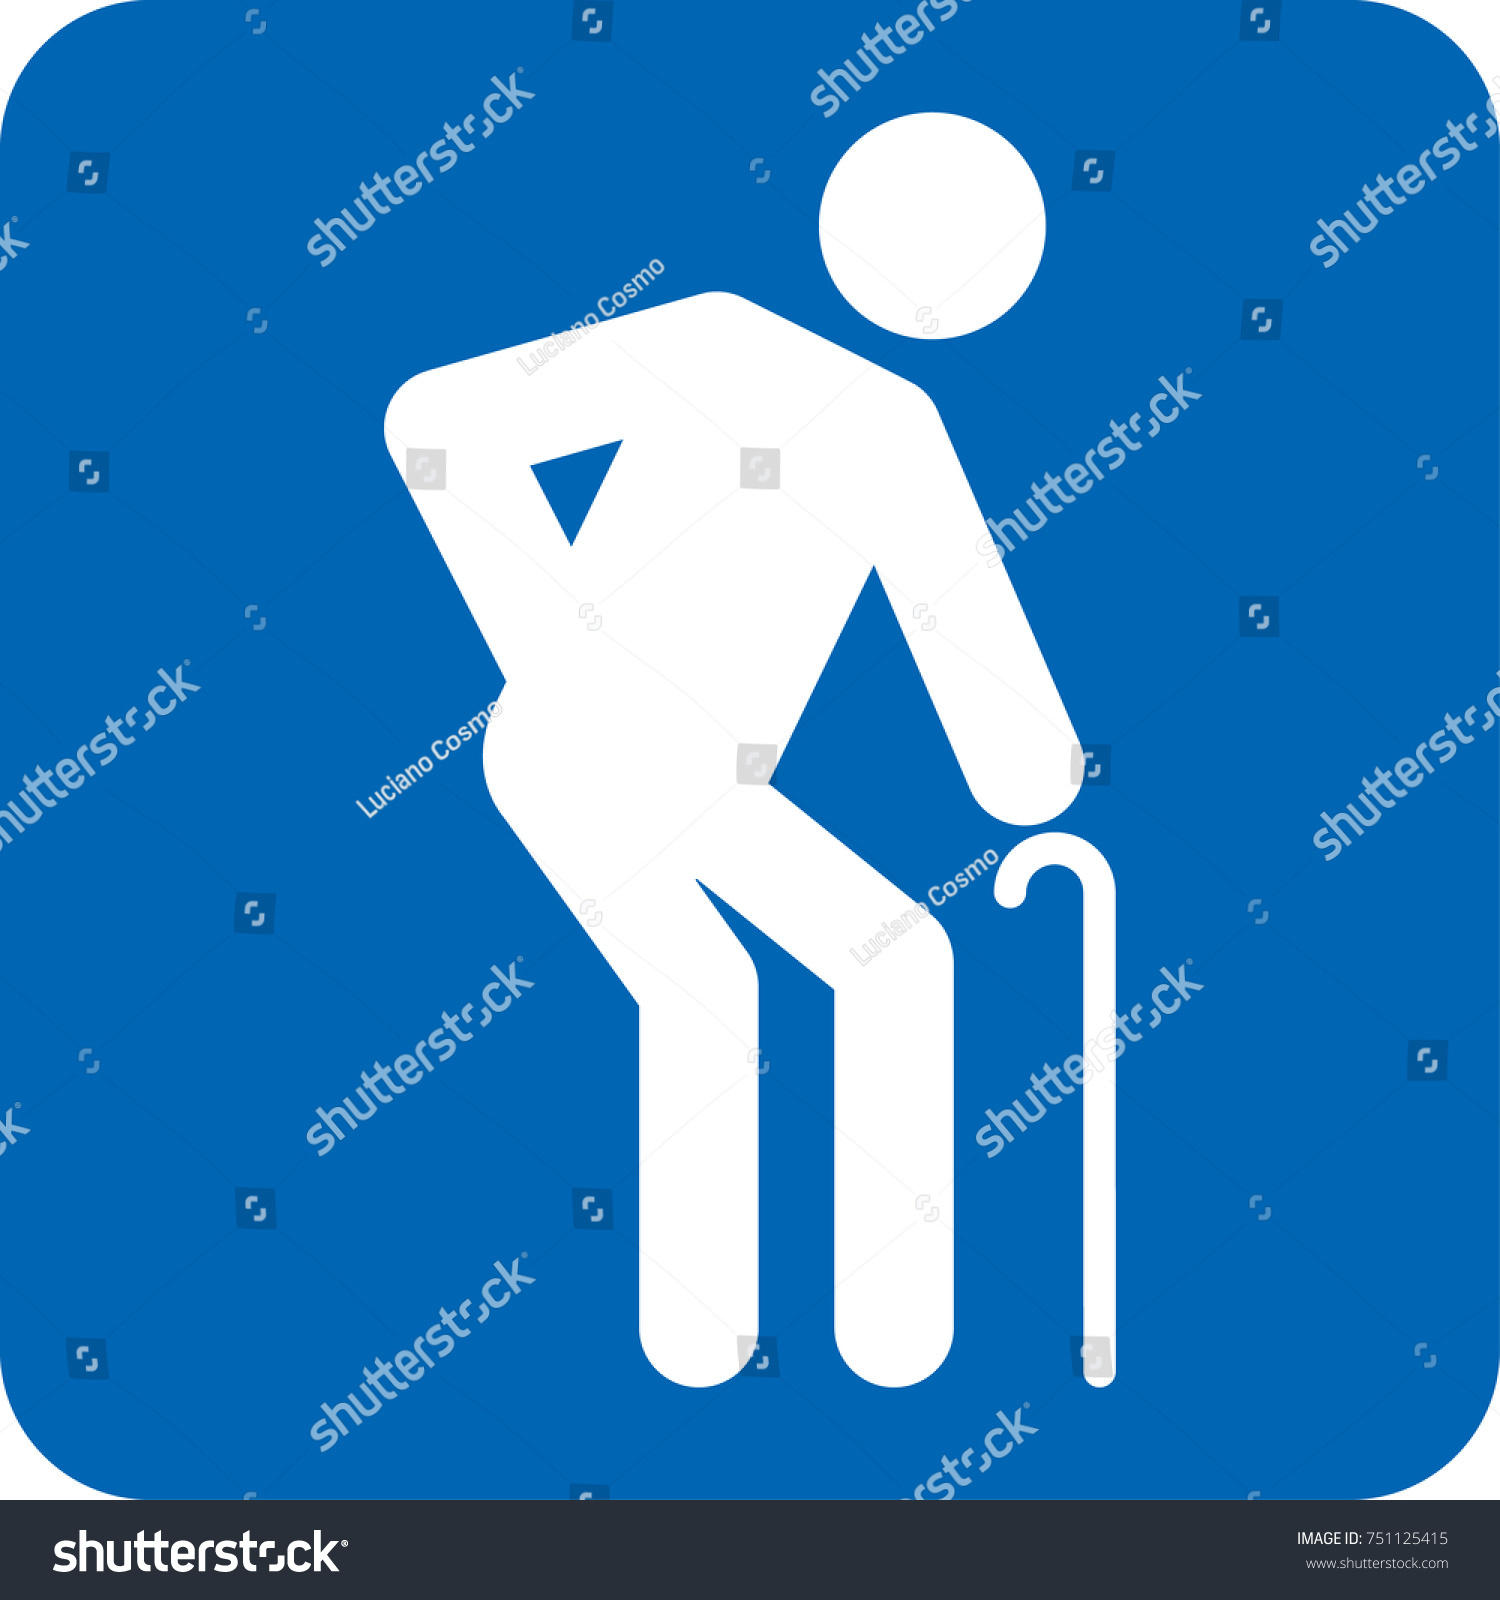 Elderly Icon Pictogram Special Needs Blue Stock Vector